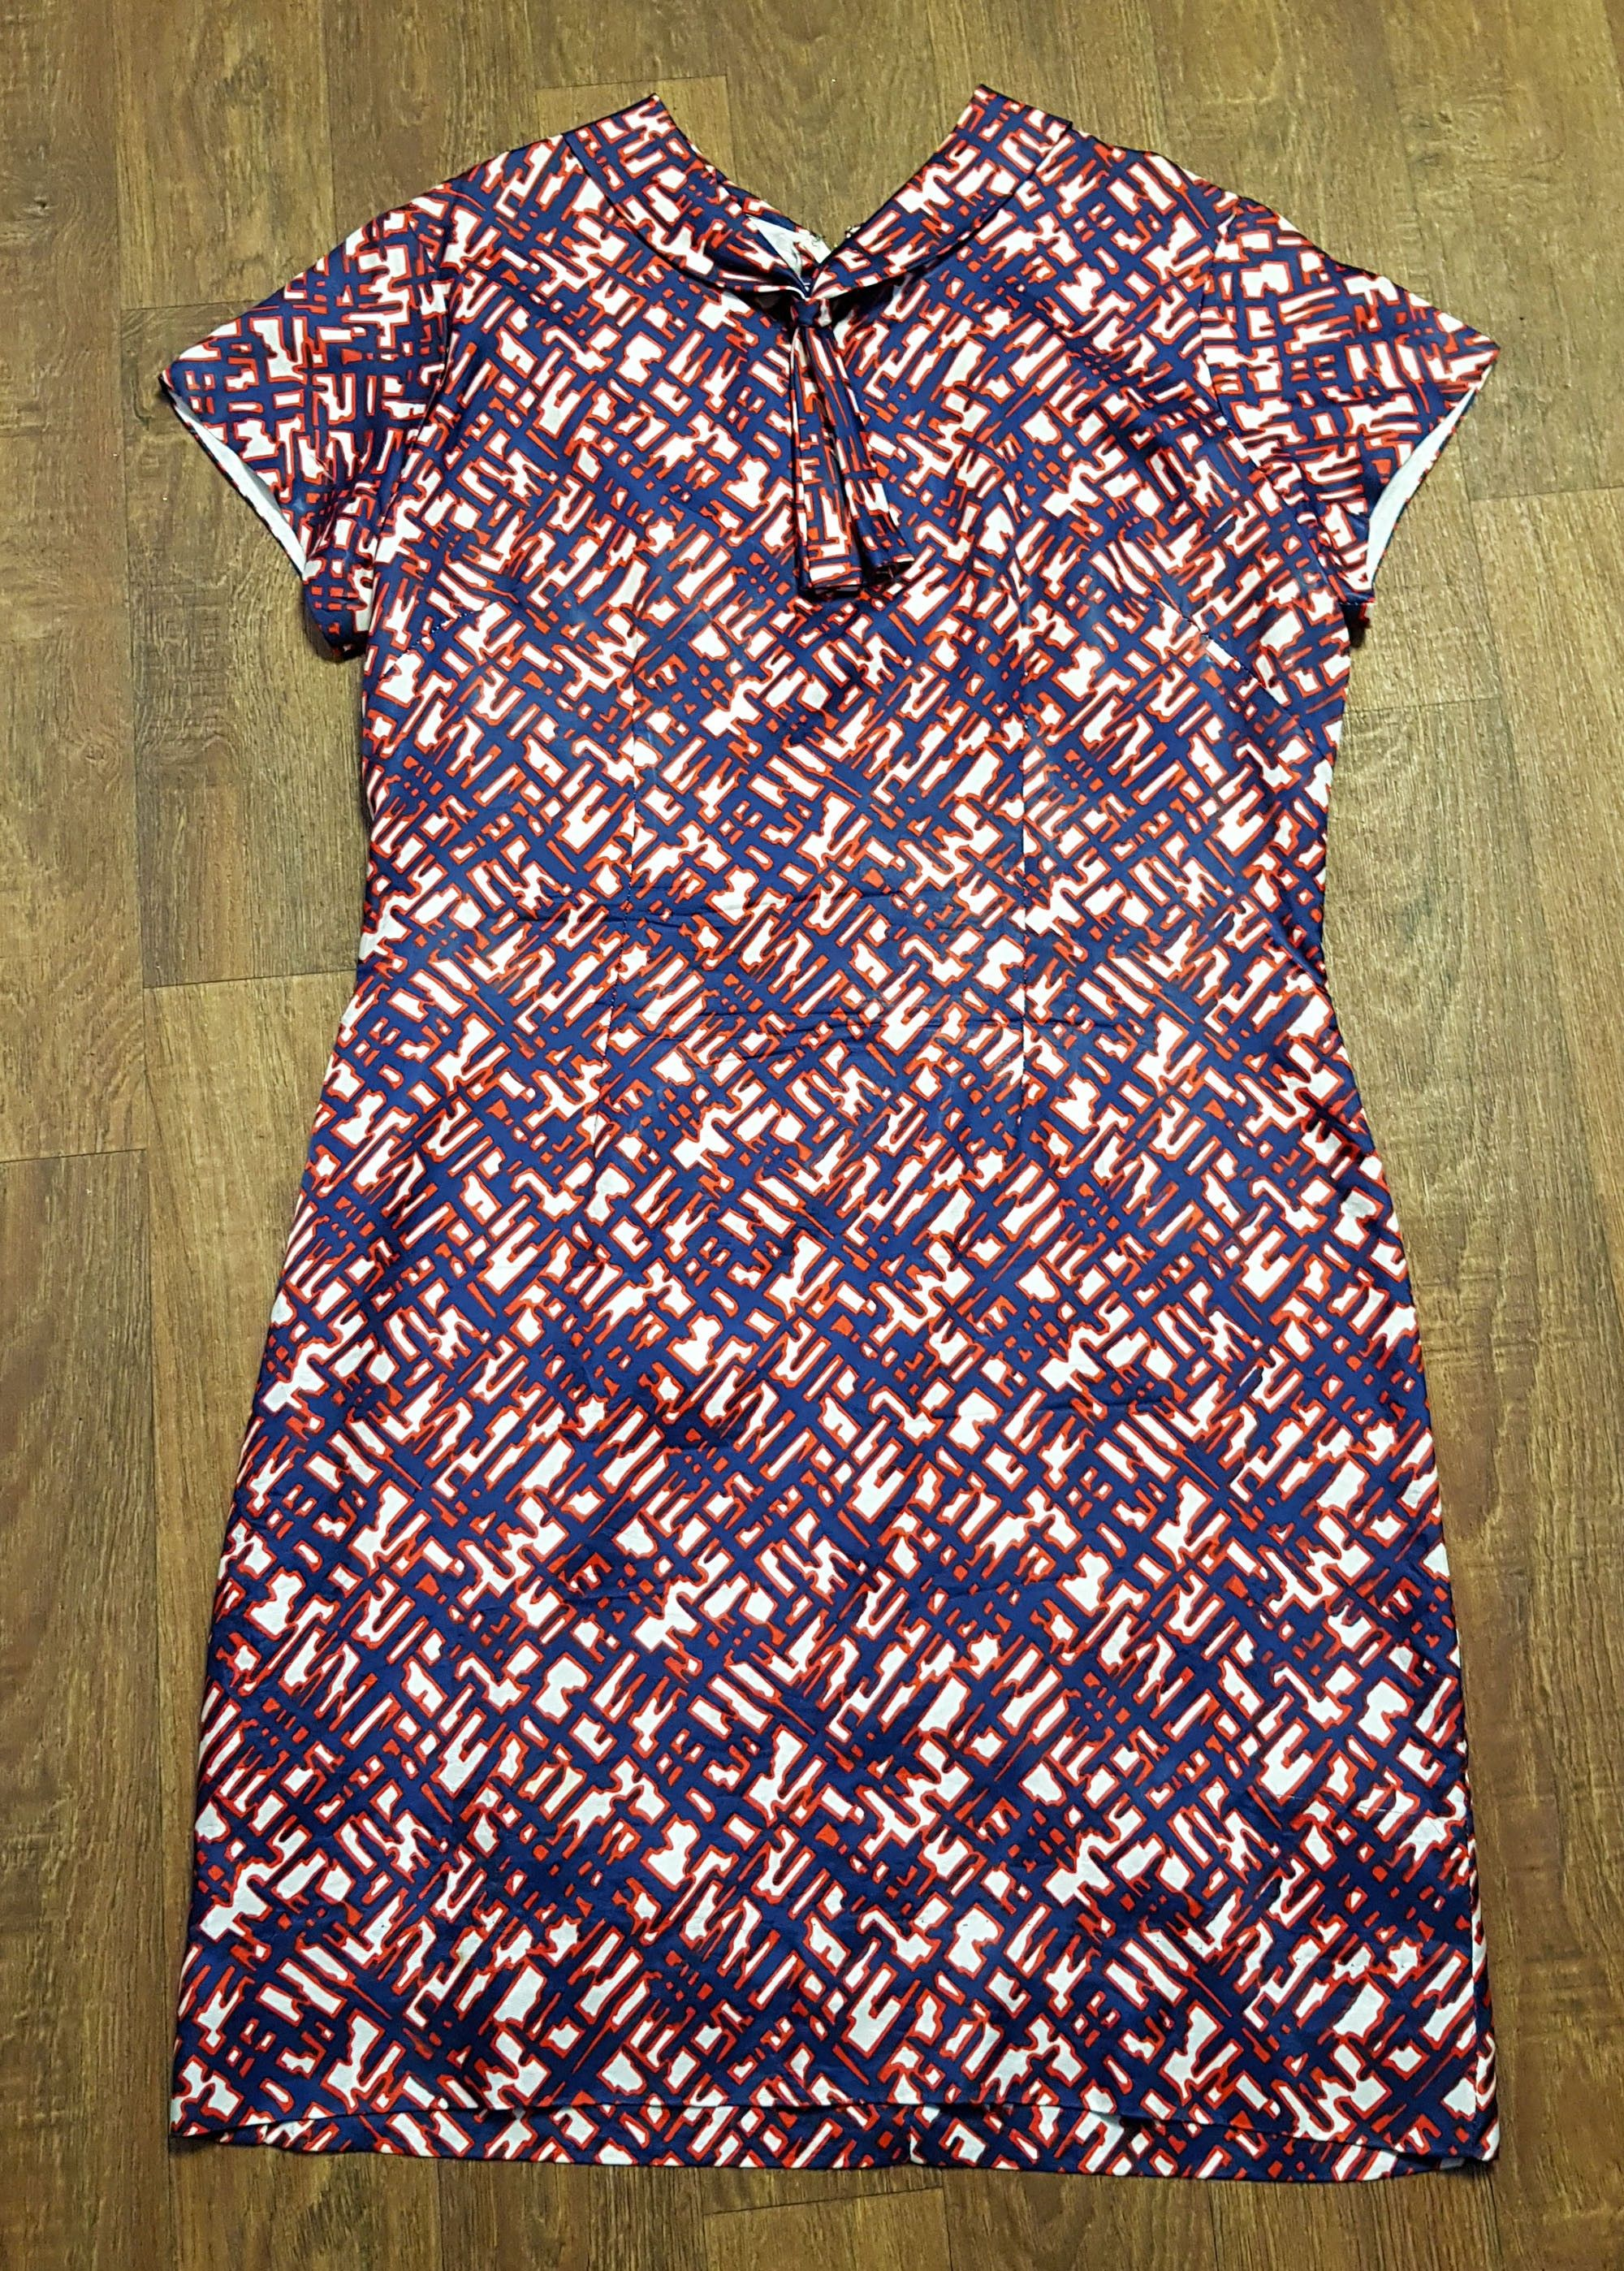 1970s Vintage Navy & Red Patterned Shift Dress UK Size 16